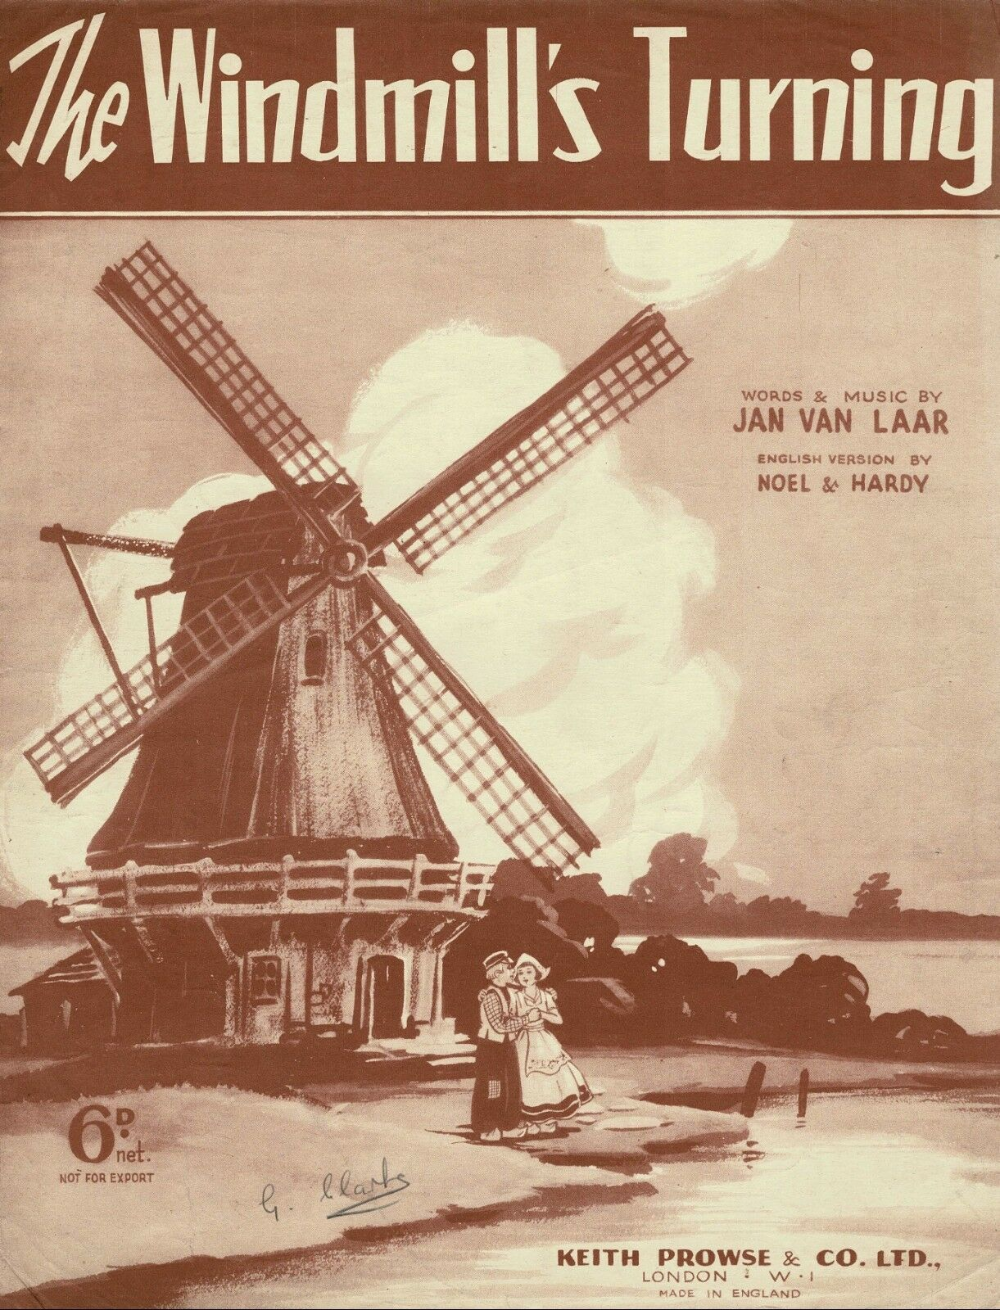 Details about THE WINDMILL'S TURNING Vintage Sheet Music DA #vintagesheetmusic THE WINDMILL'S TURNING Vintage Sheet Music DA | eBay #vintagesheetmusic